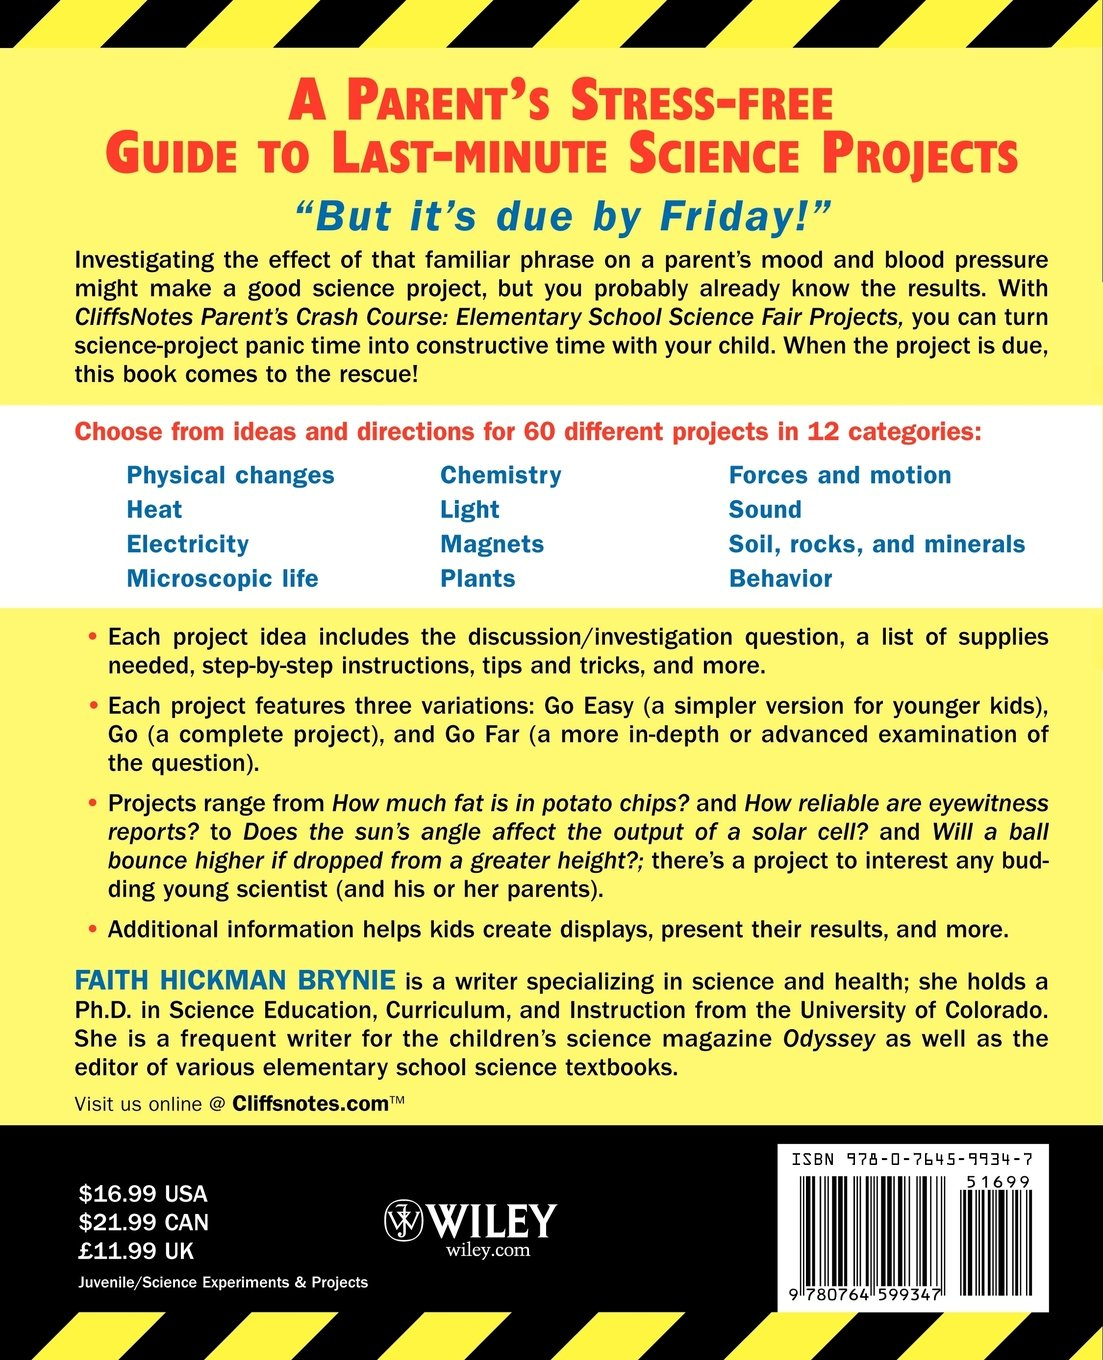 cliffsnotes parent s crash course elementary school science fair cliffsnotes parent s crash course elementary school science fair projects cliffsnotes literature guides faith brynie 9780764599347 com books